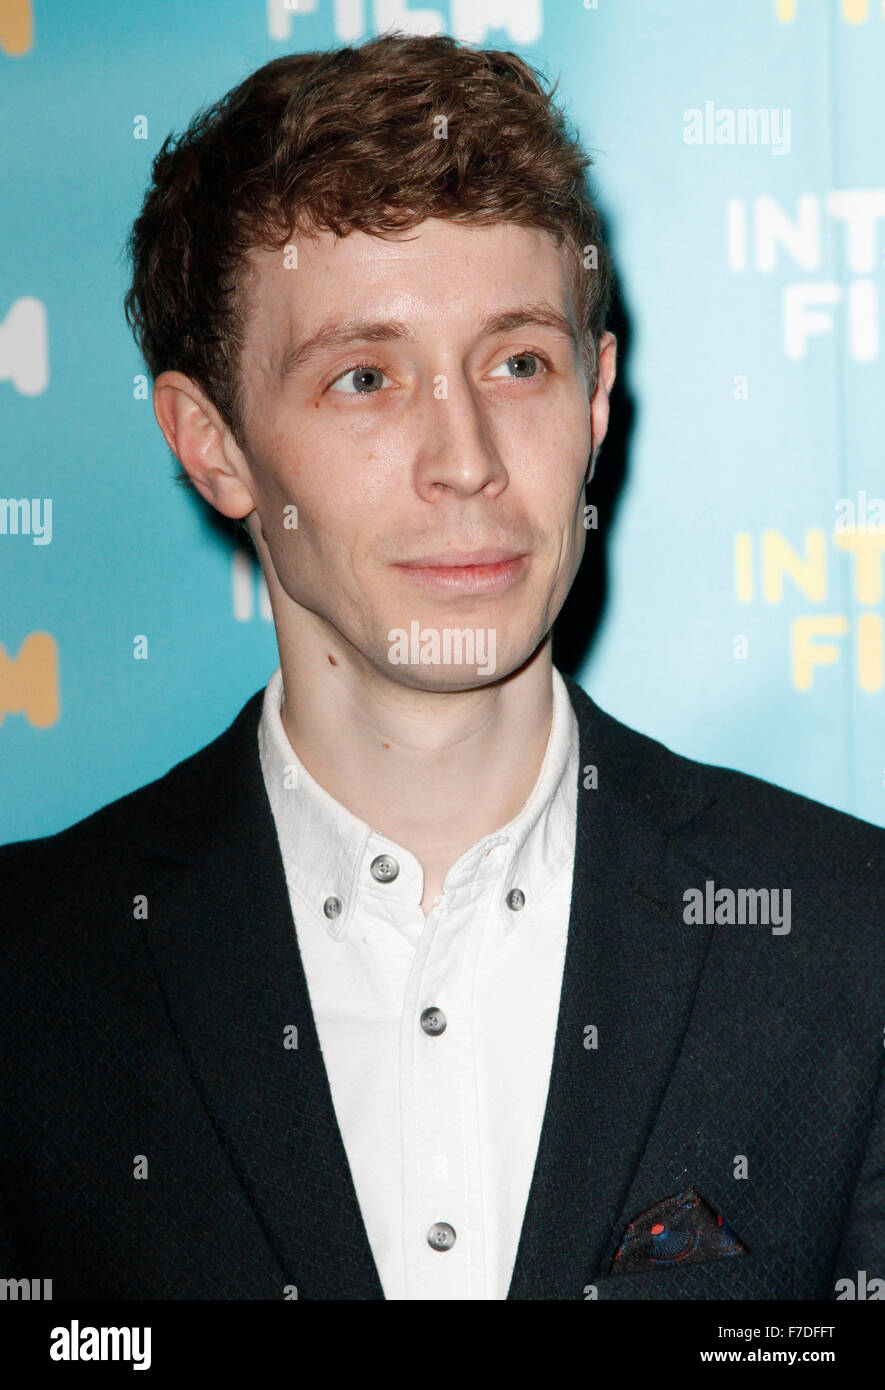 Mar 24, 2015 - London, England, UK - Matt Edmondson attending  Into Film Awards 2015, Empire Cinema, Leicester Square - Stock Image